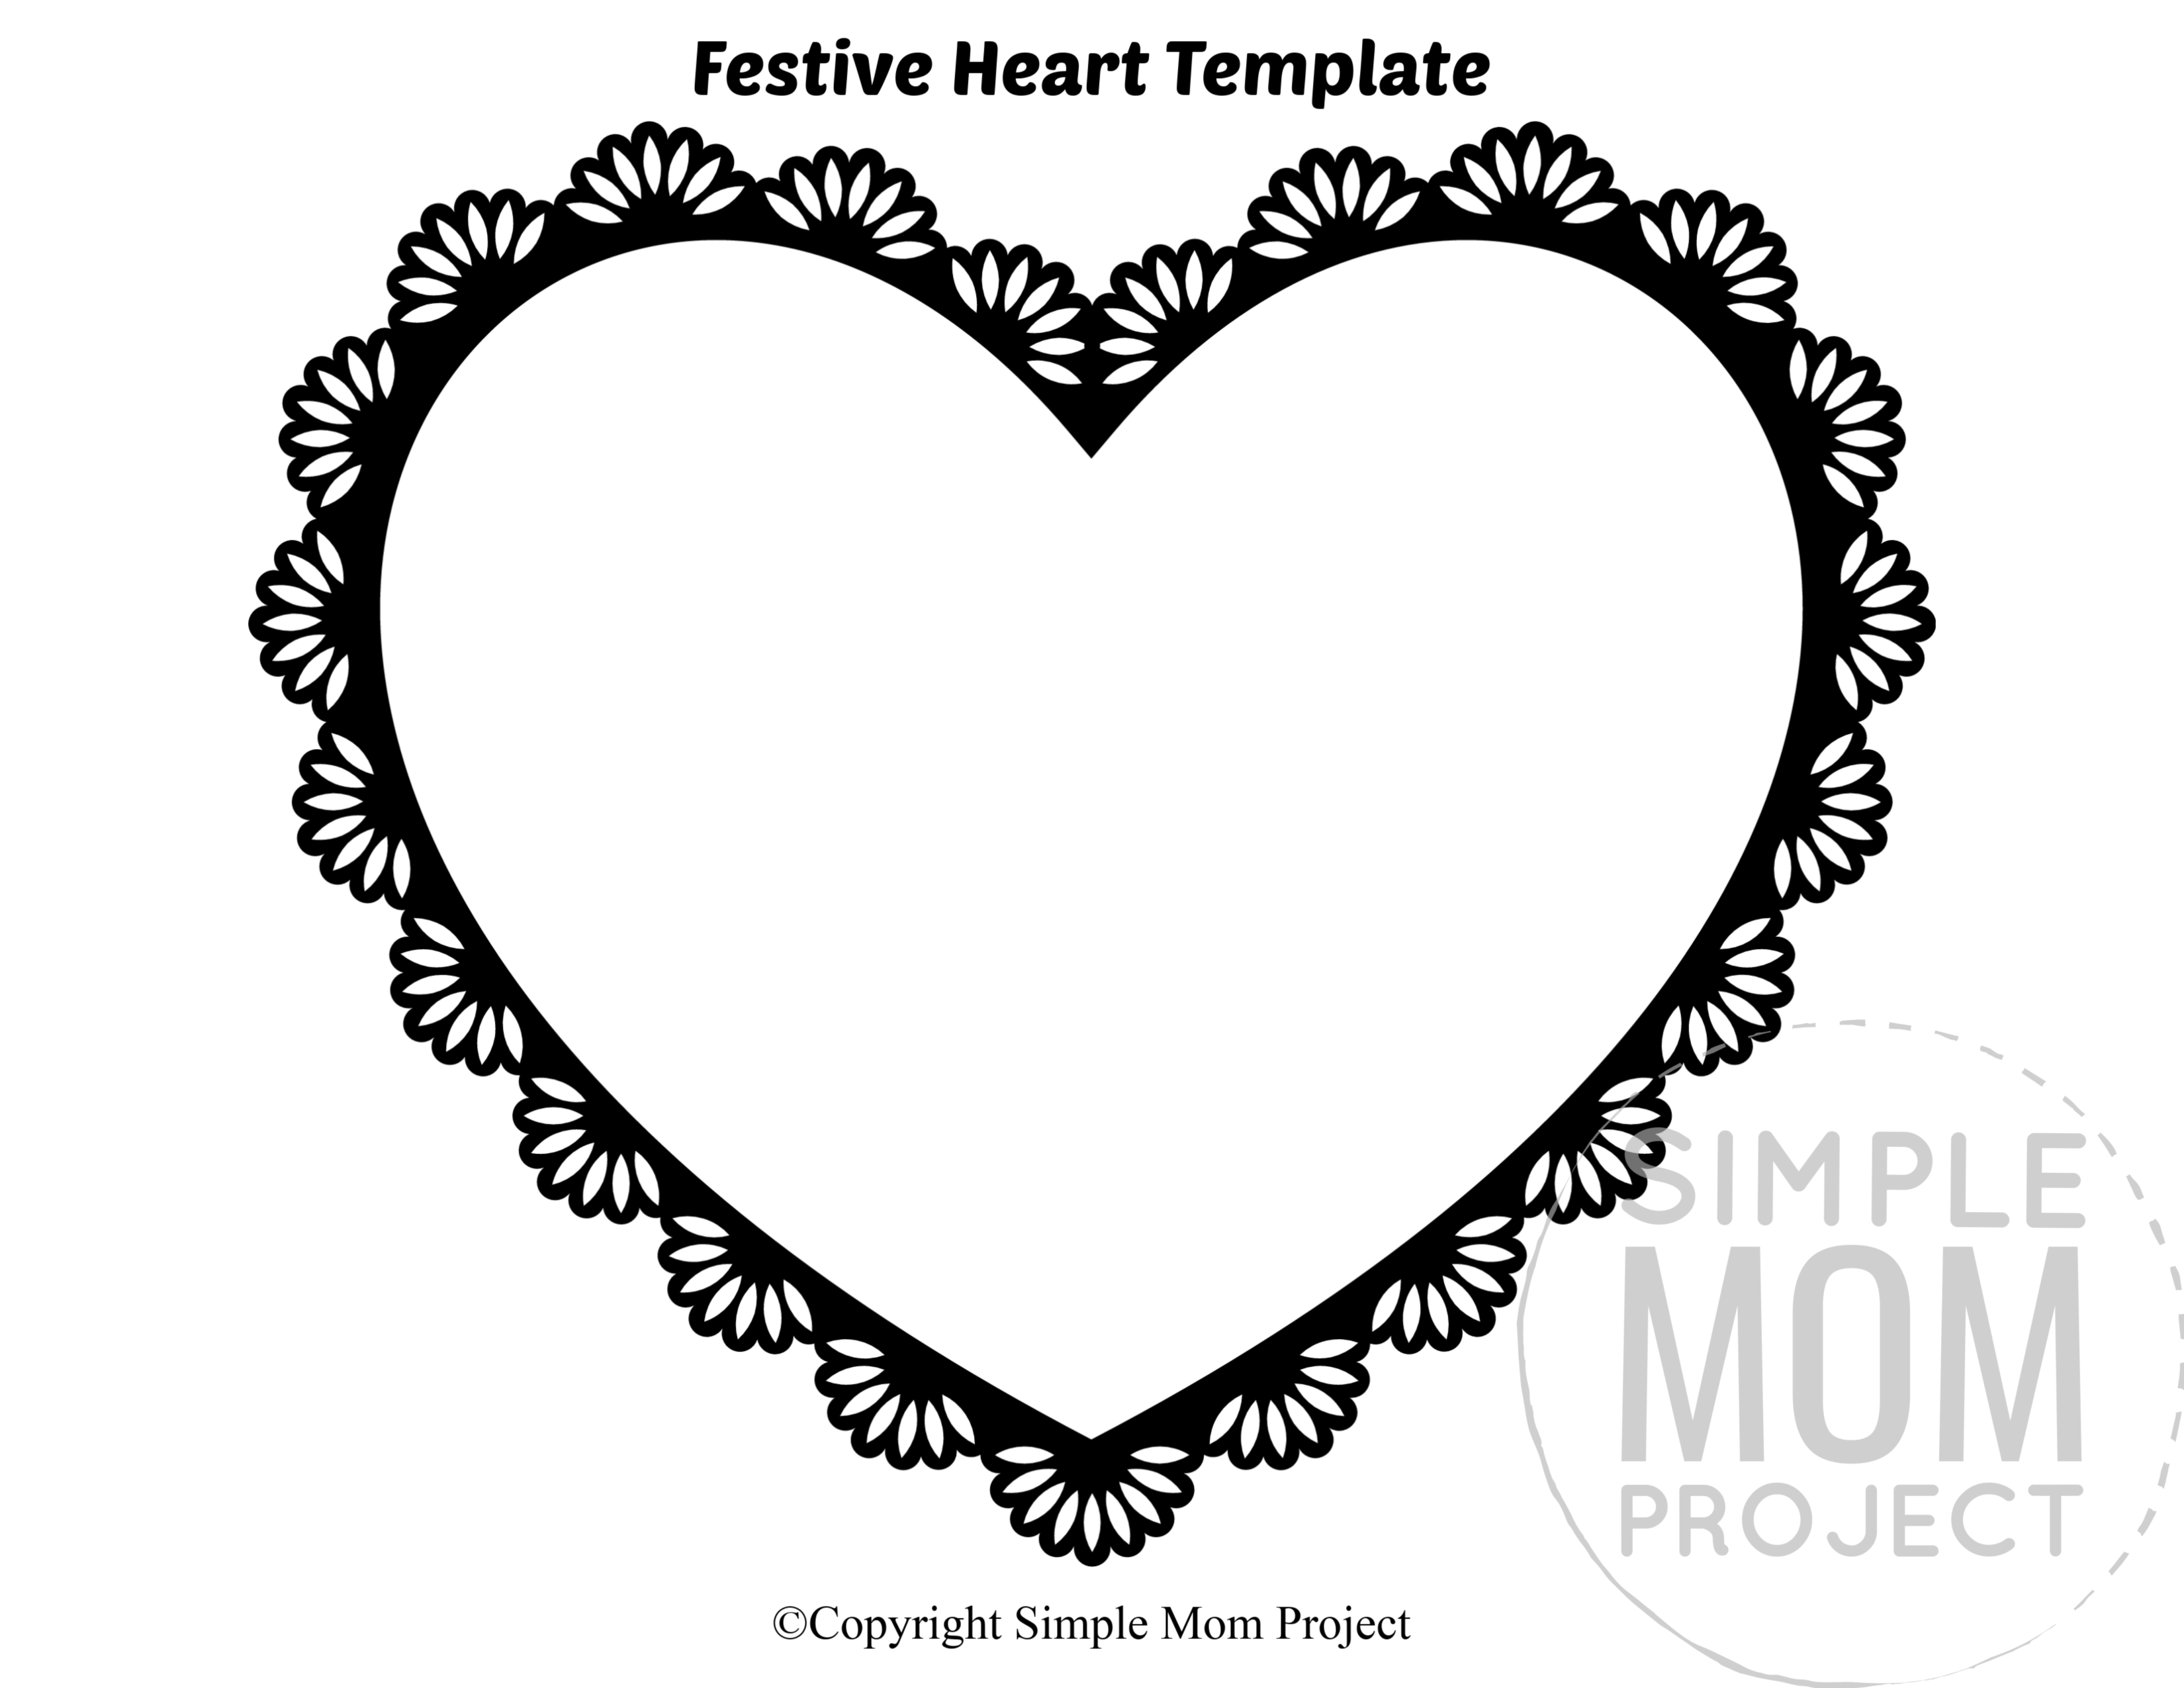 Festive Large Heart Shaped Template Full Page Cutout outline stencil